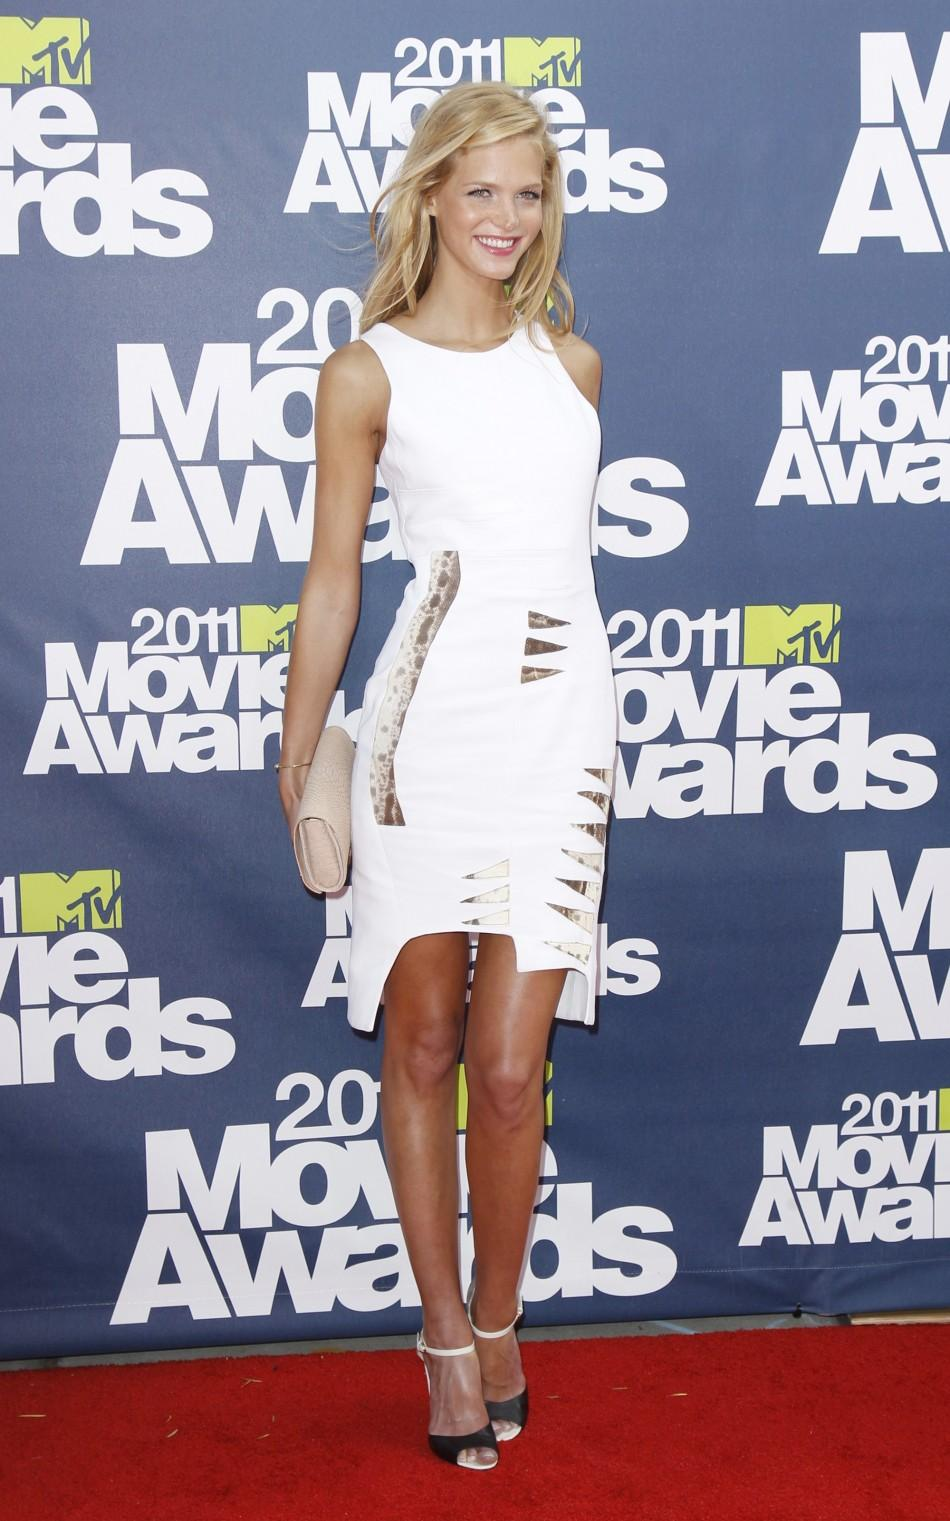 Model Erin Heatherton arrives at the 2011 MTV Movie Awards in Los Angeles, June 5, 2011.